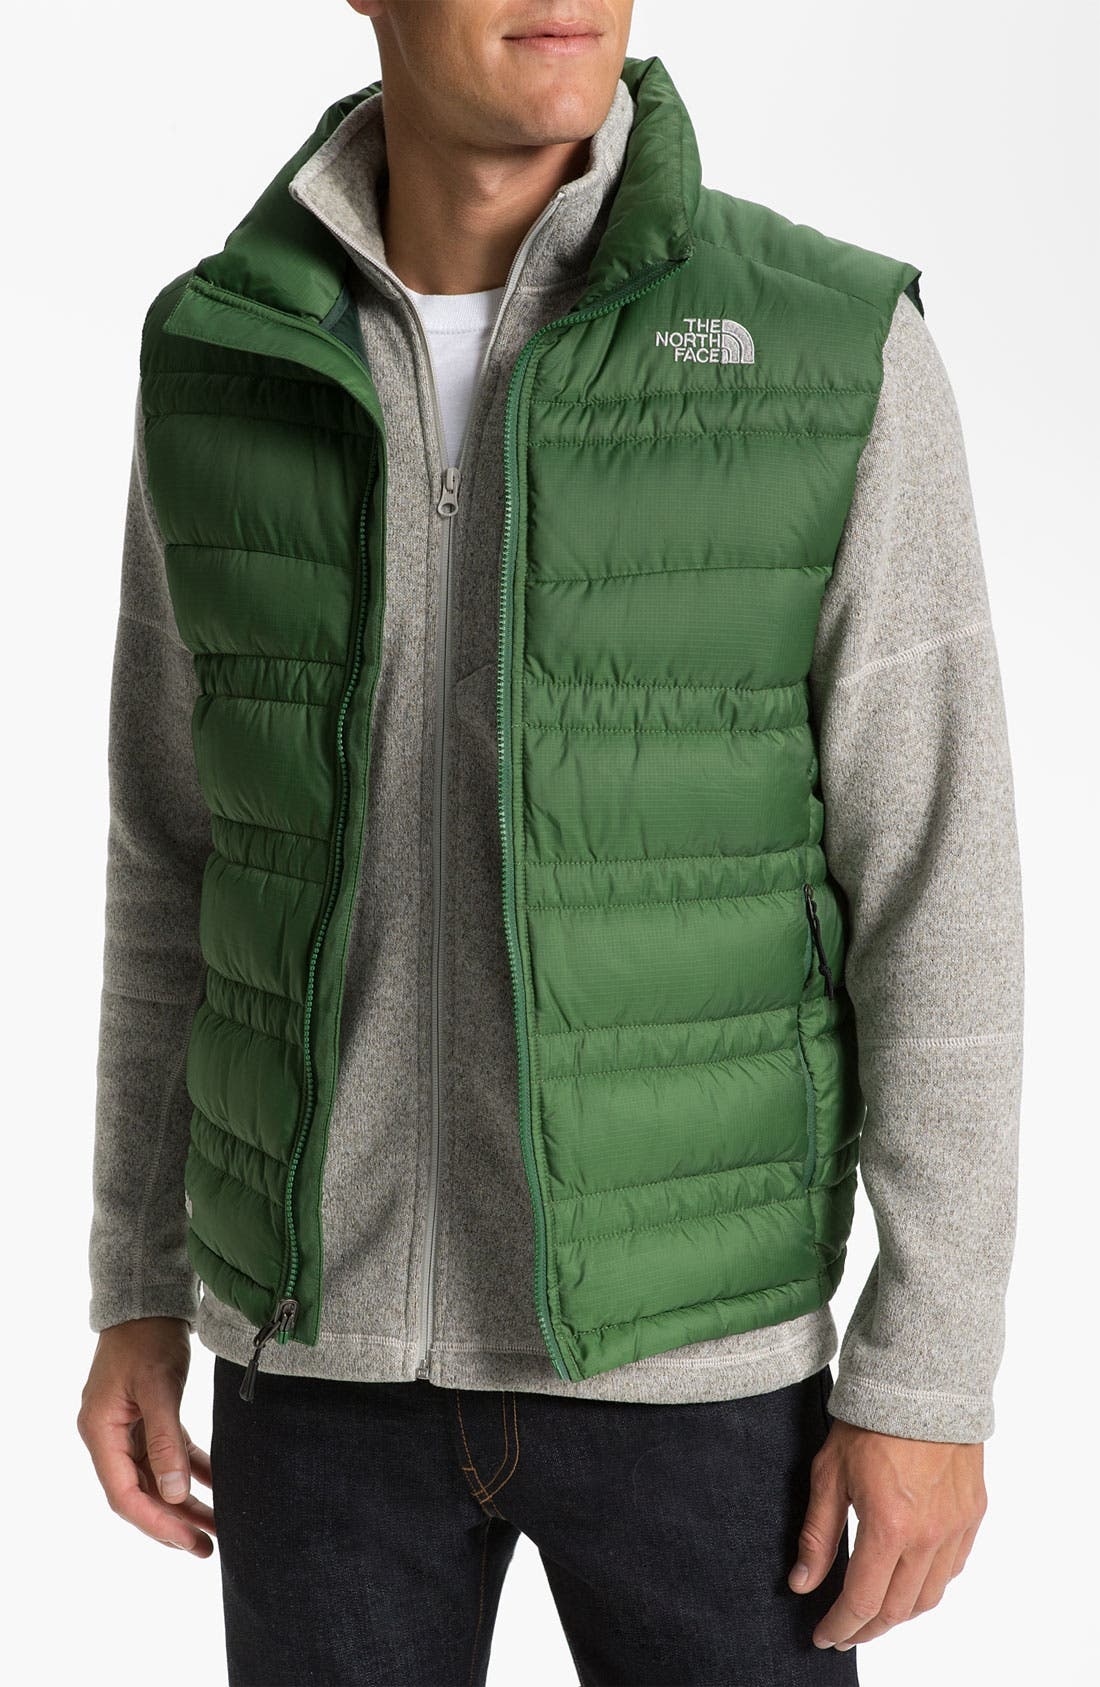 Alternate Image 1 Selected - The North Face 'Aconcagua' Vest